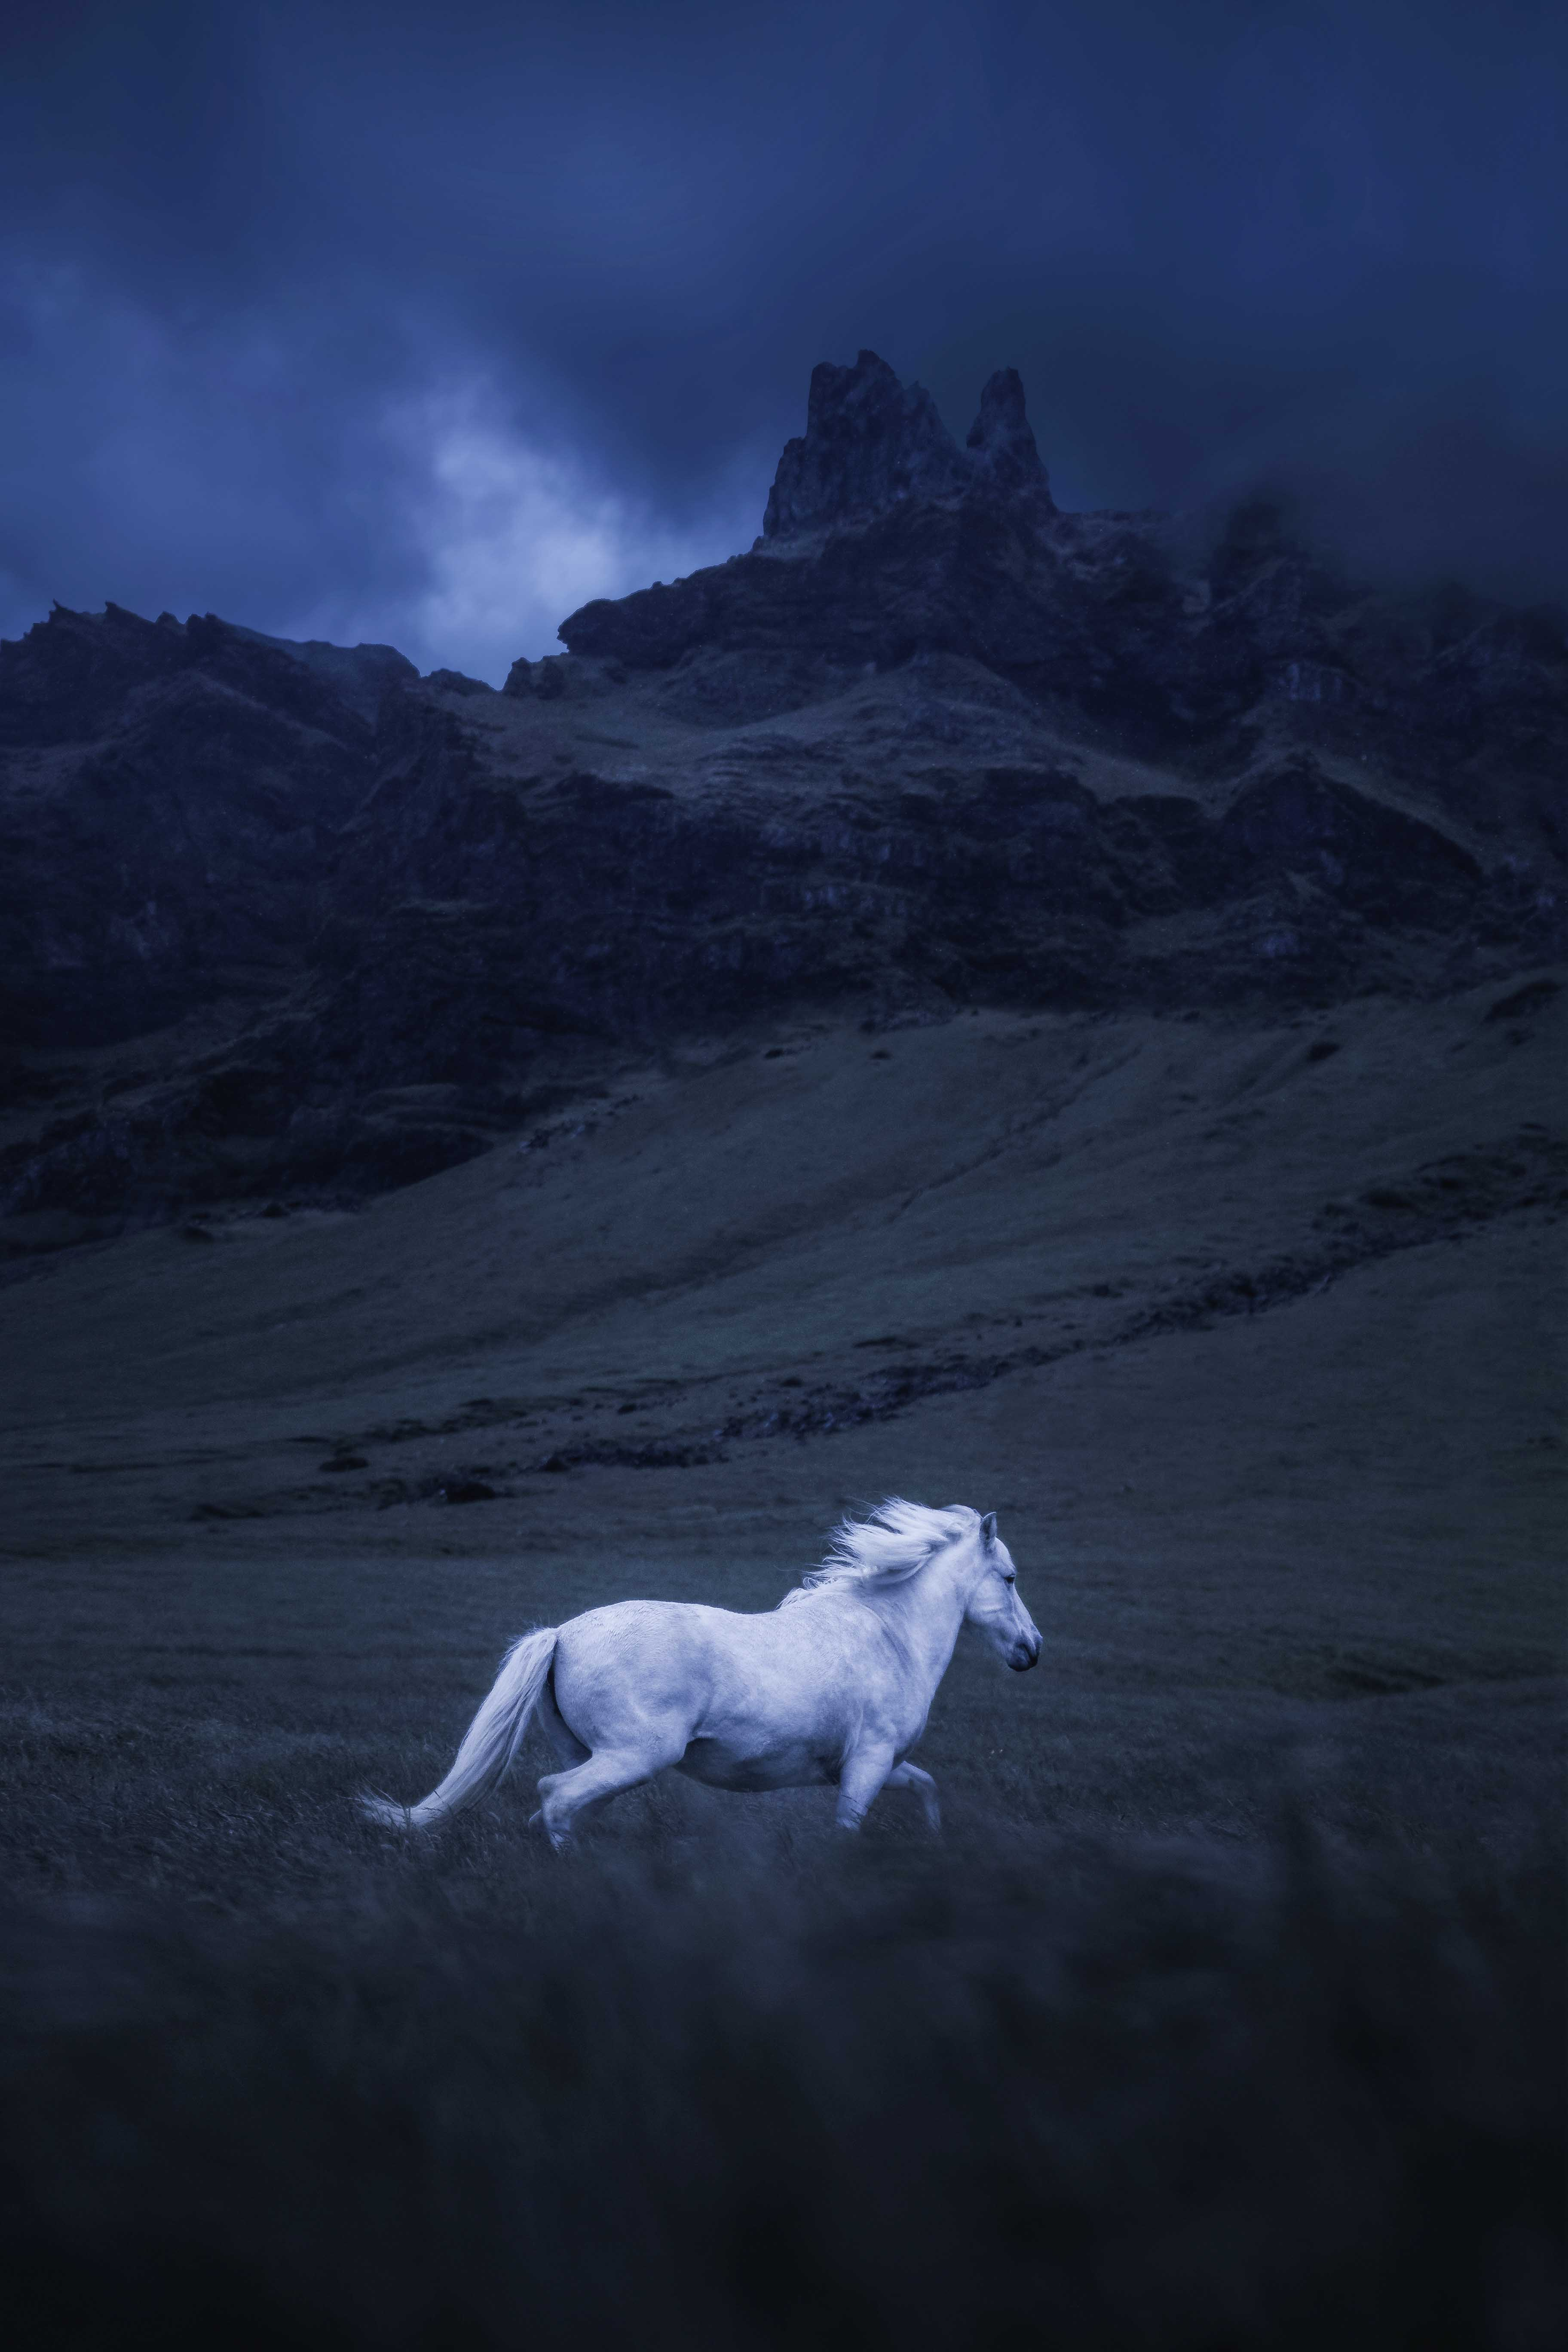 Wildlife photography of a white horse running through a field in Iceland Photo by Andrew Studer